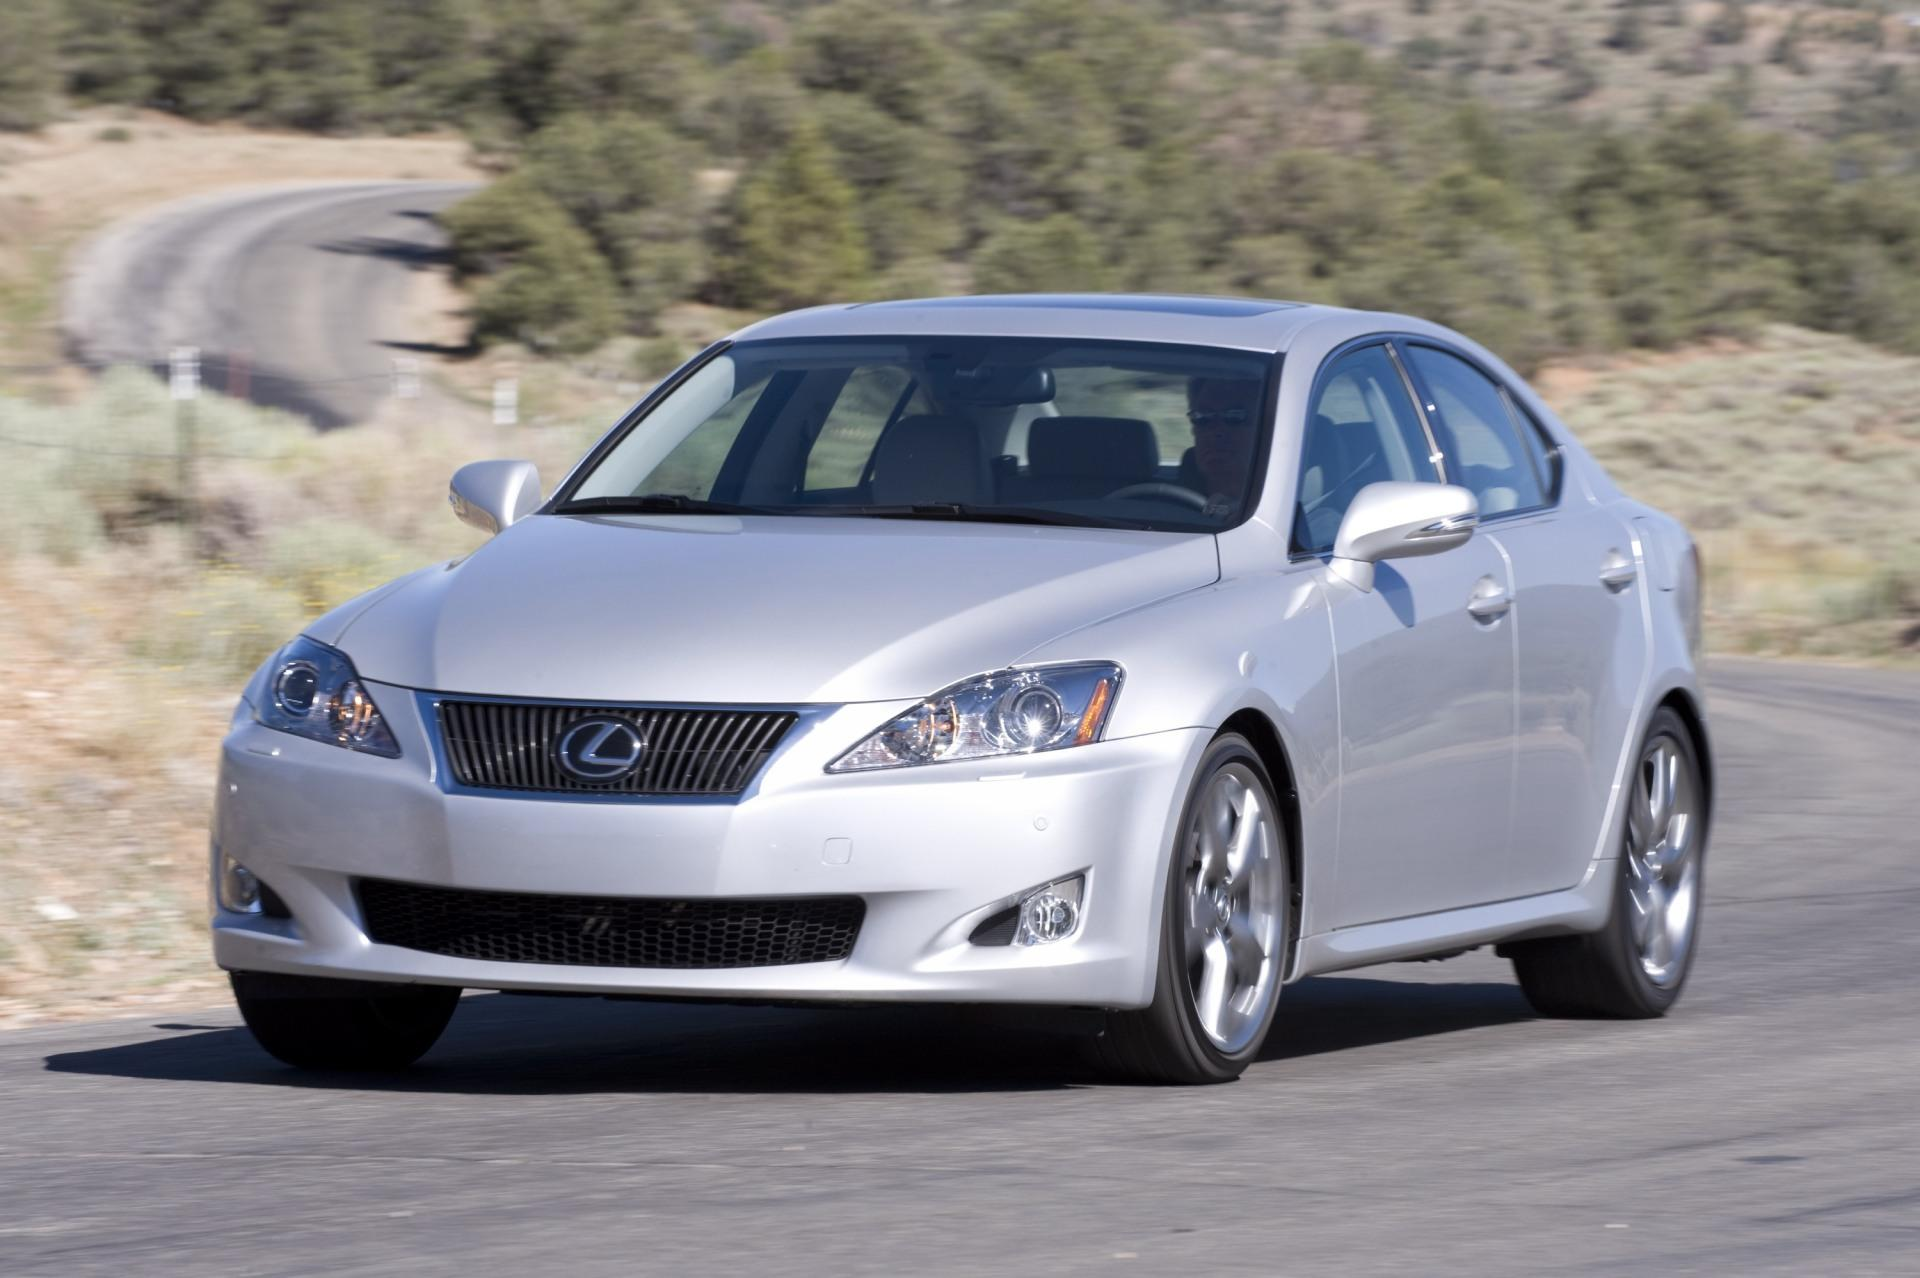 lexus pic is overview cargurus cars compared to